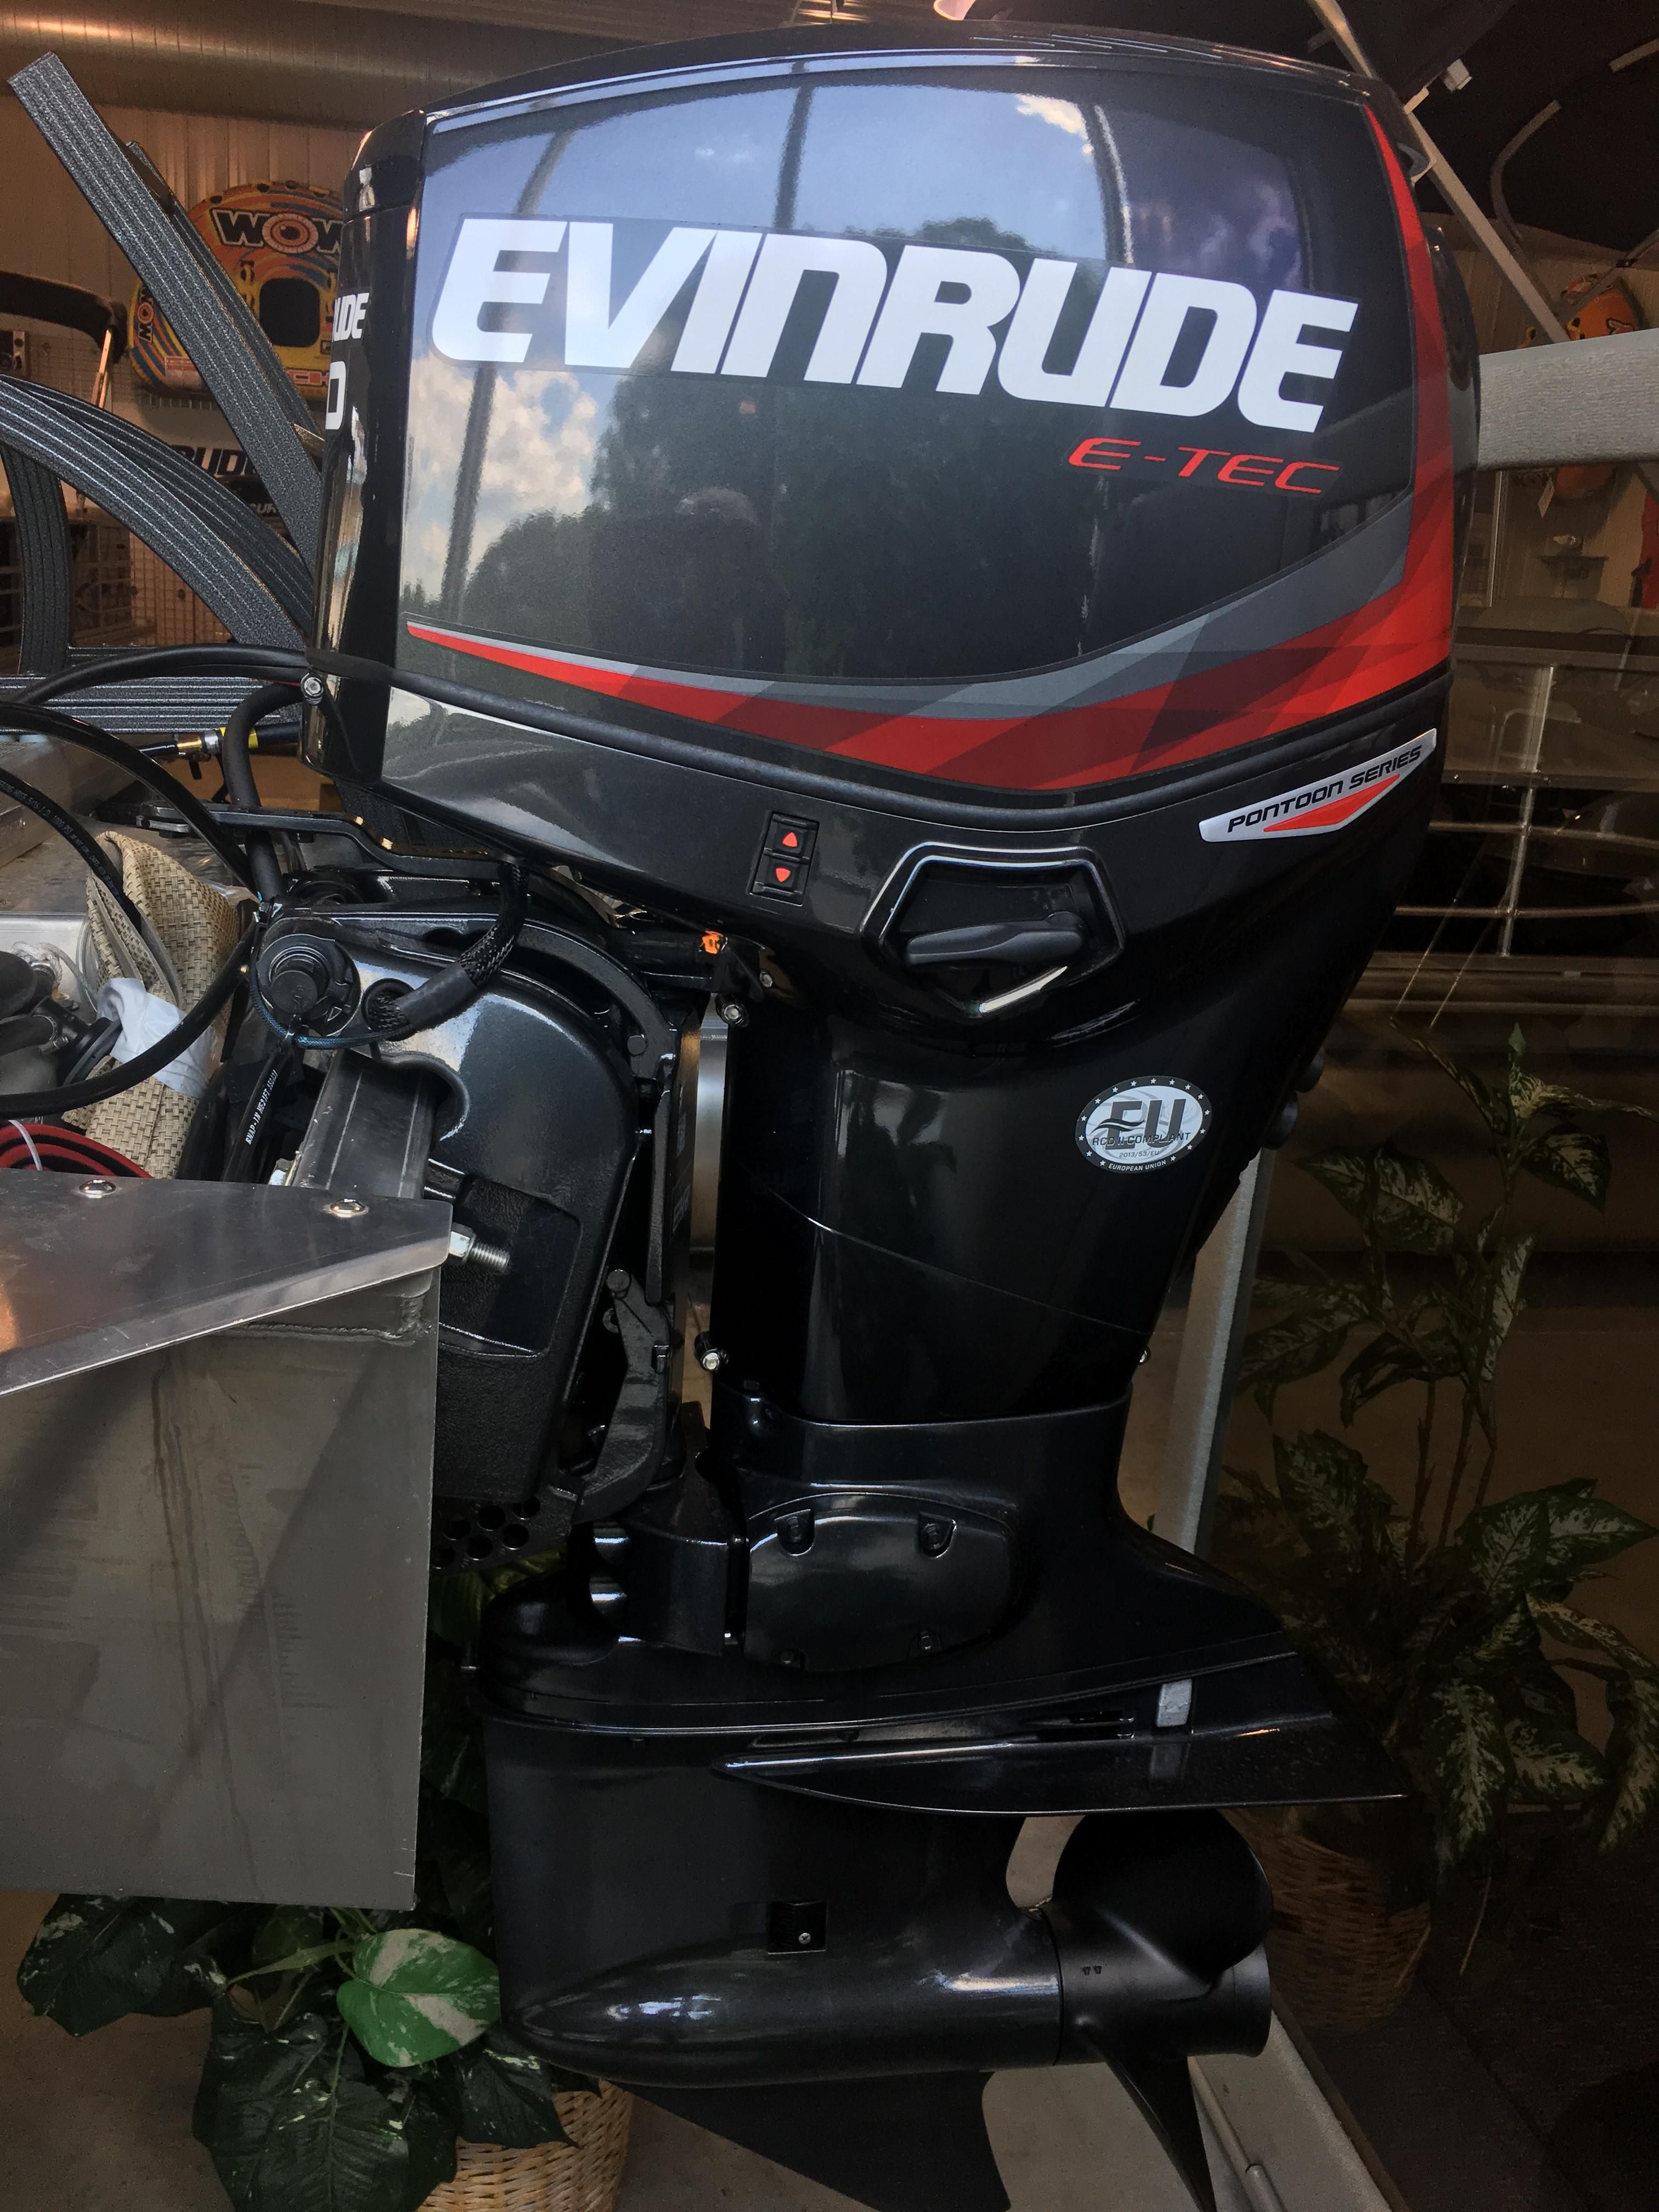 2017 evinrude 40 150 hp all makes power boat for sale for Evinrude 40 hp outboard motor for sale